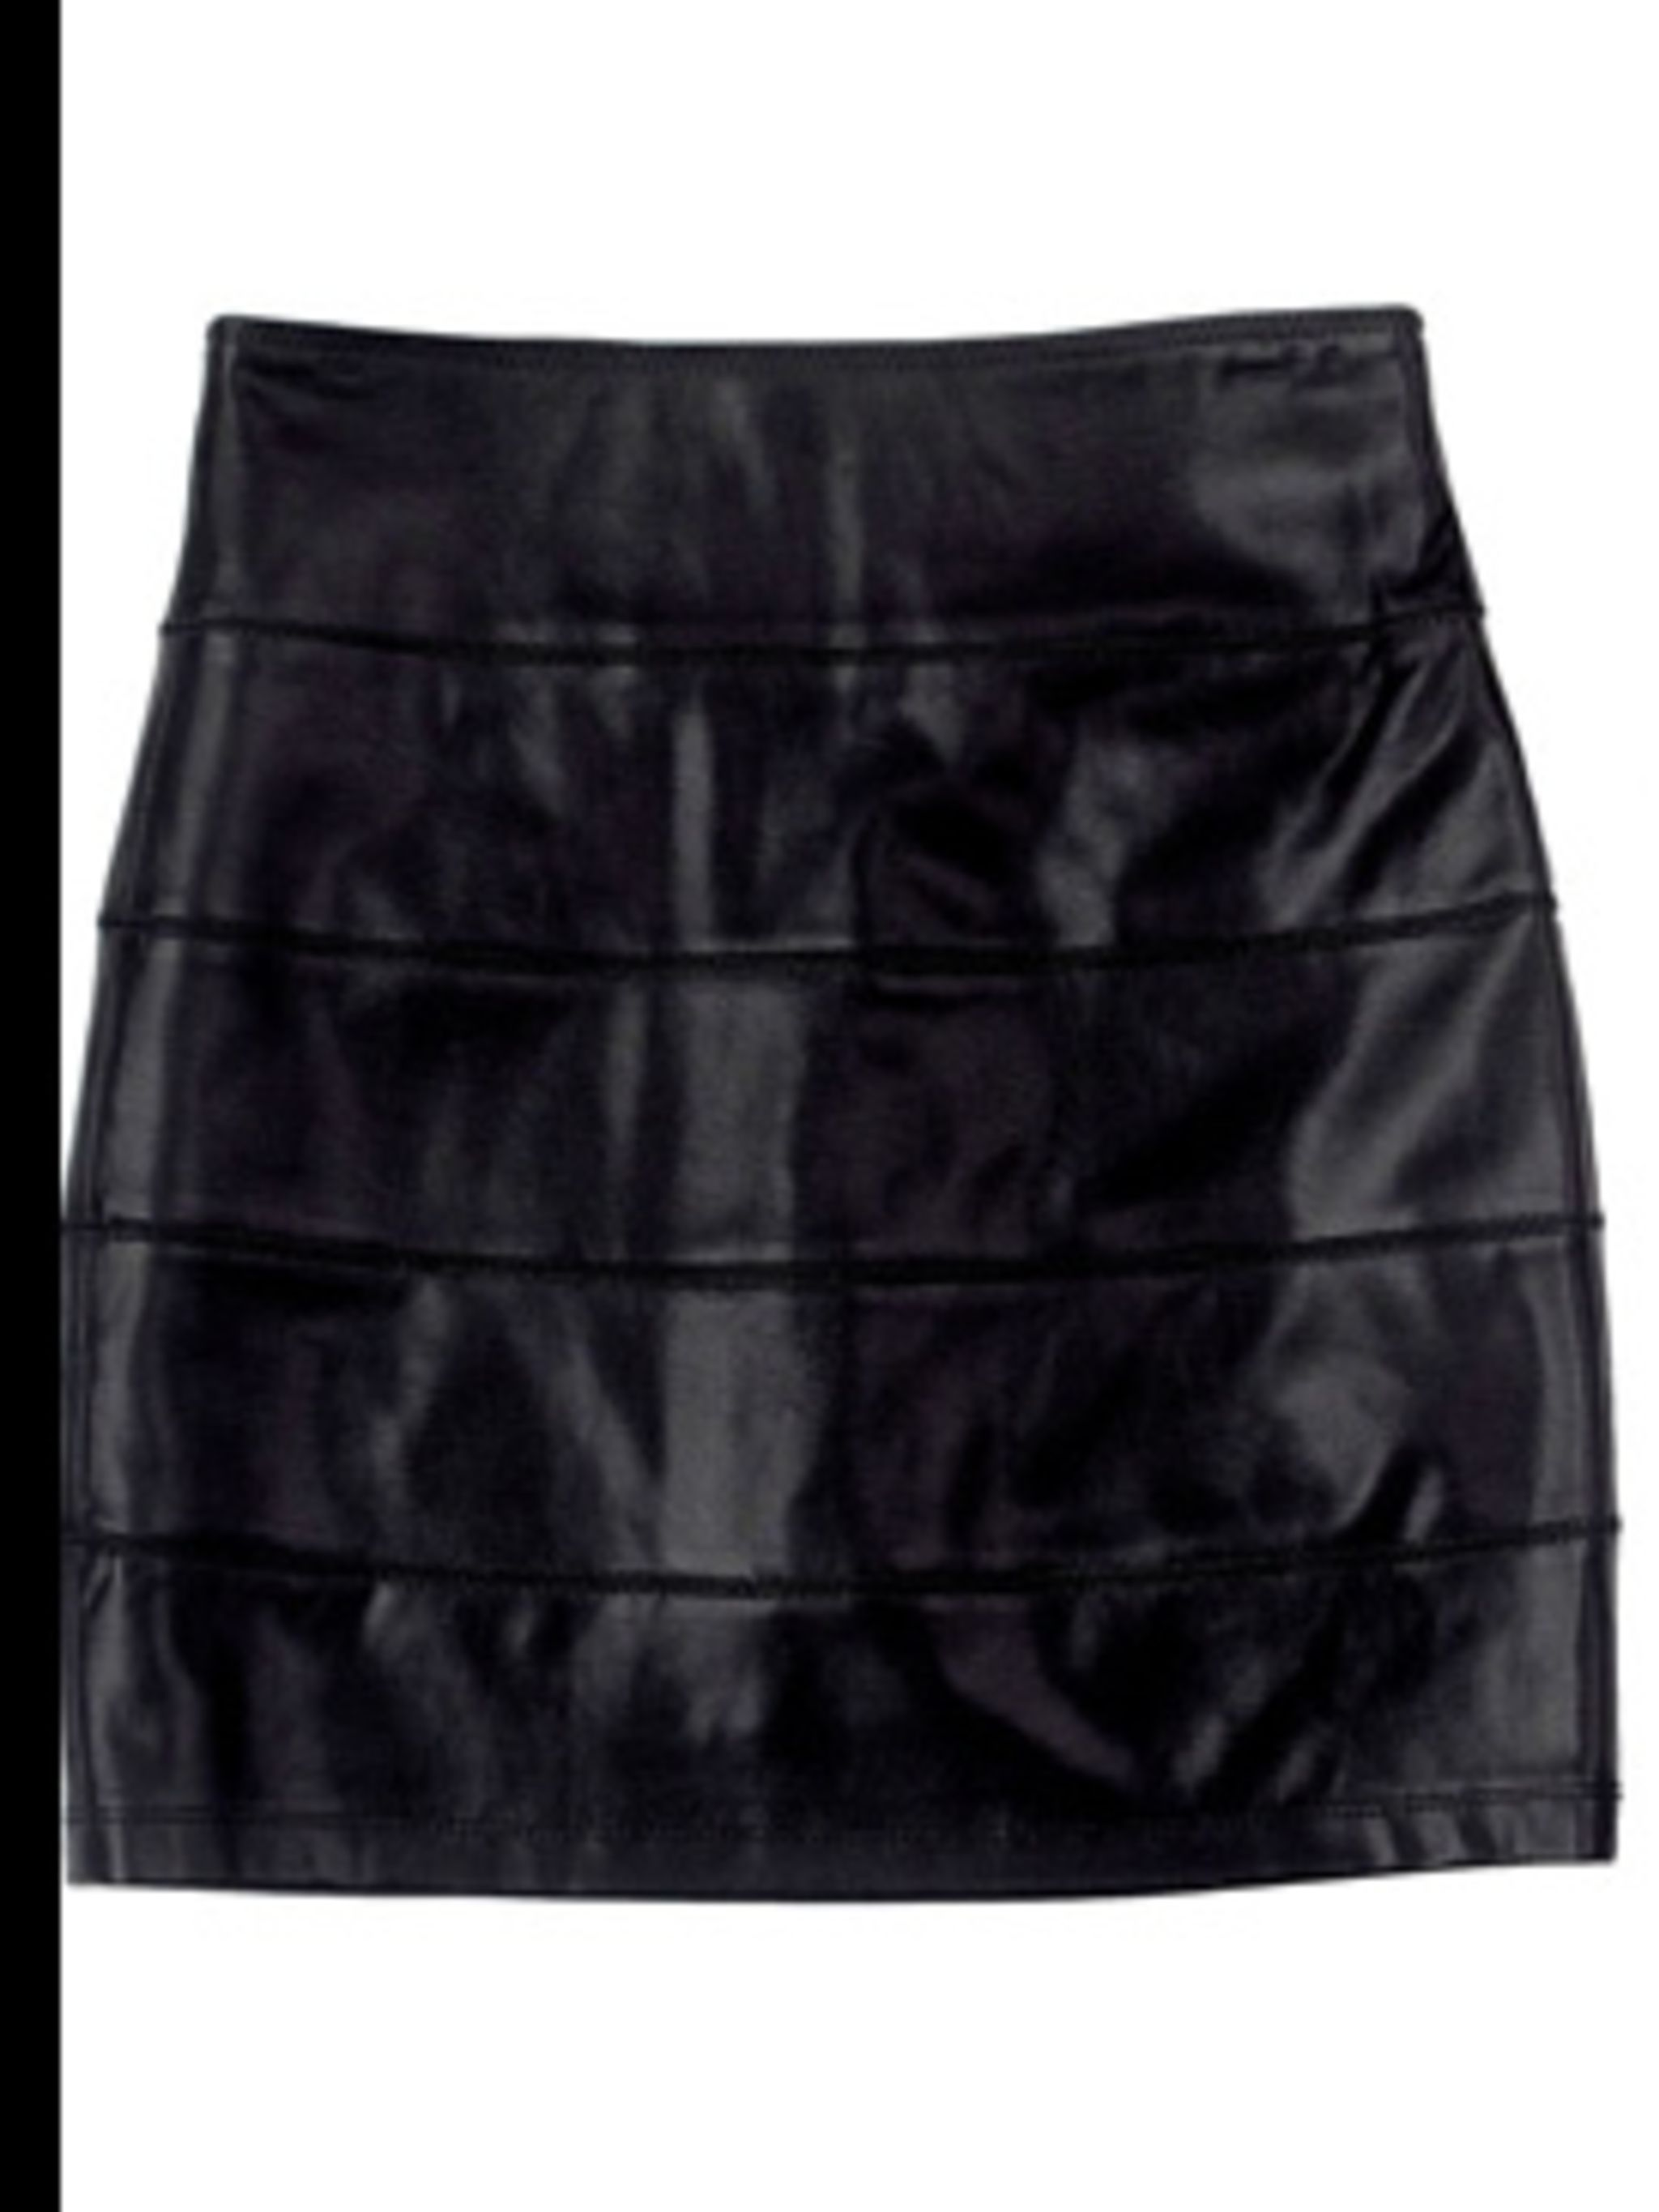 "<p>Skirt, £146.81 by La Rok at <a href=""http://www.bunnyhug.co.uk/fashionshop/gbu0-prodshow/LaRok_Level_2_Faux_Leather_Black_Mini_Skirt.html?source=shopstyle"">BunnyHug</a></p>"